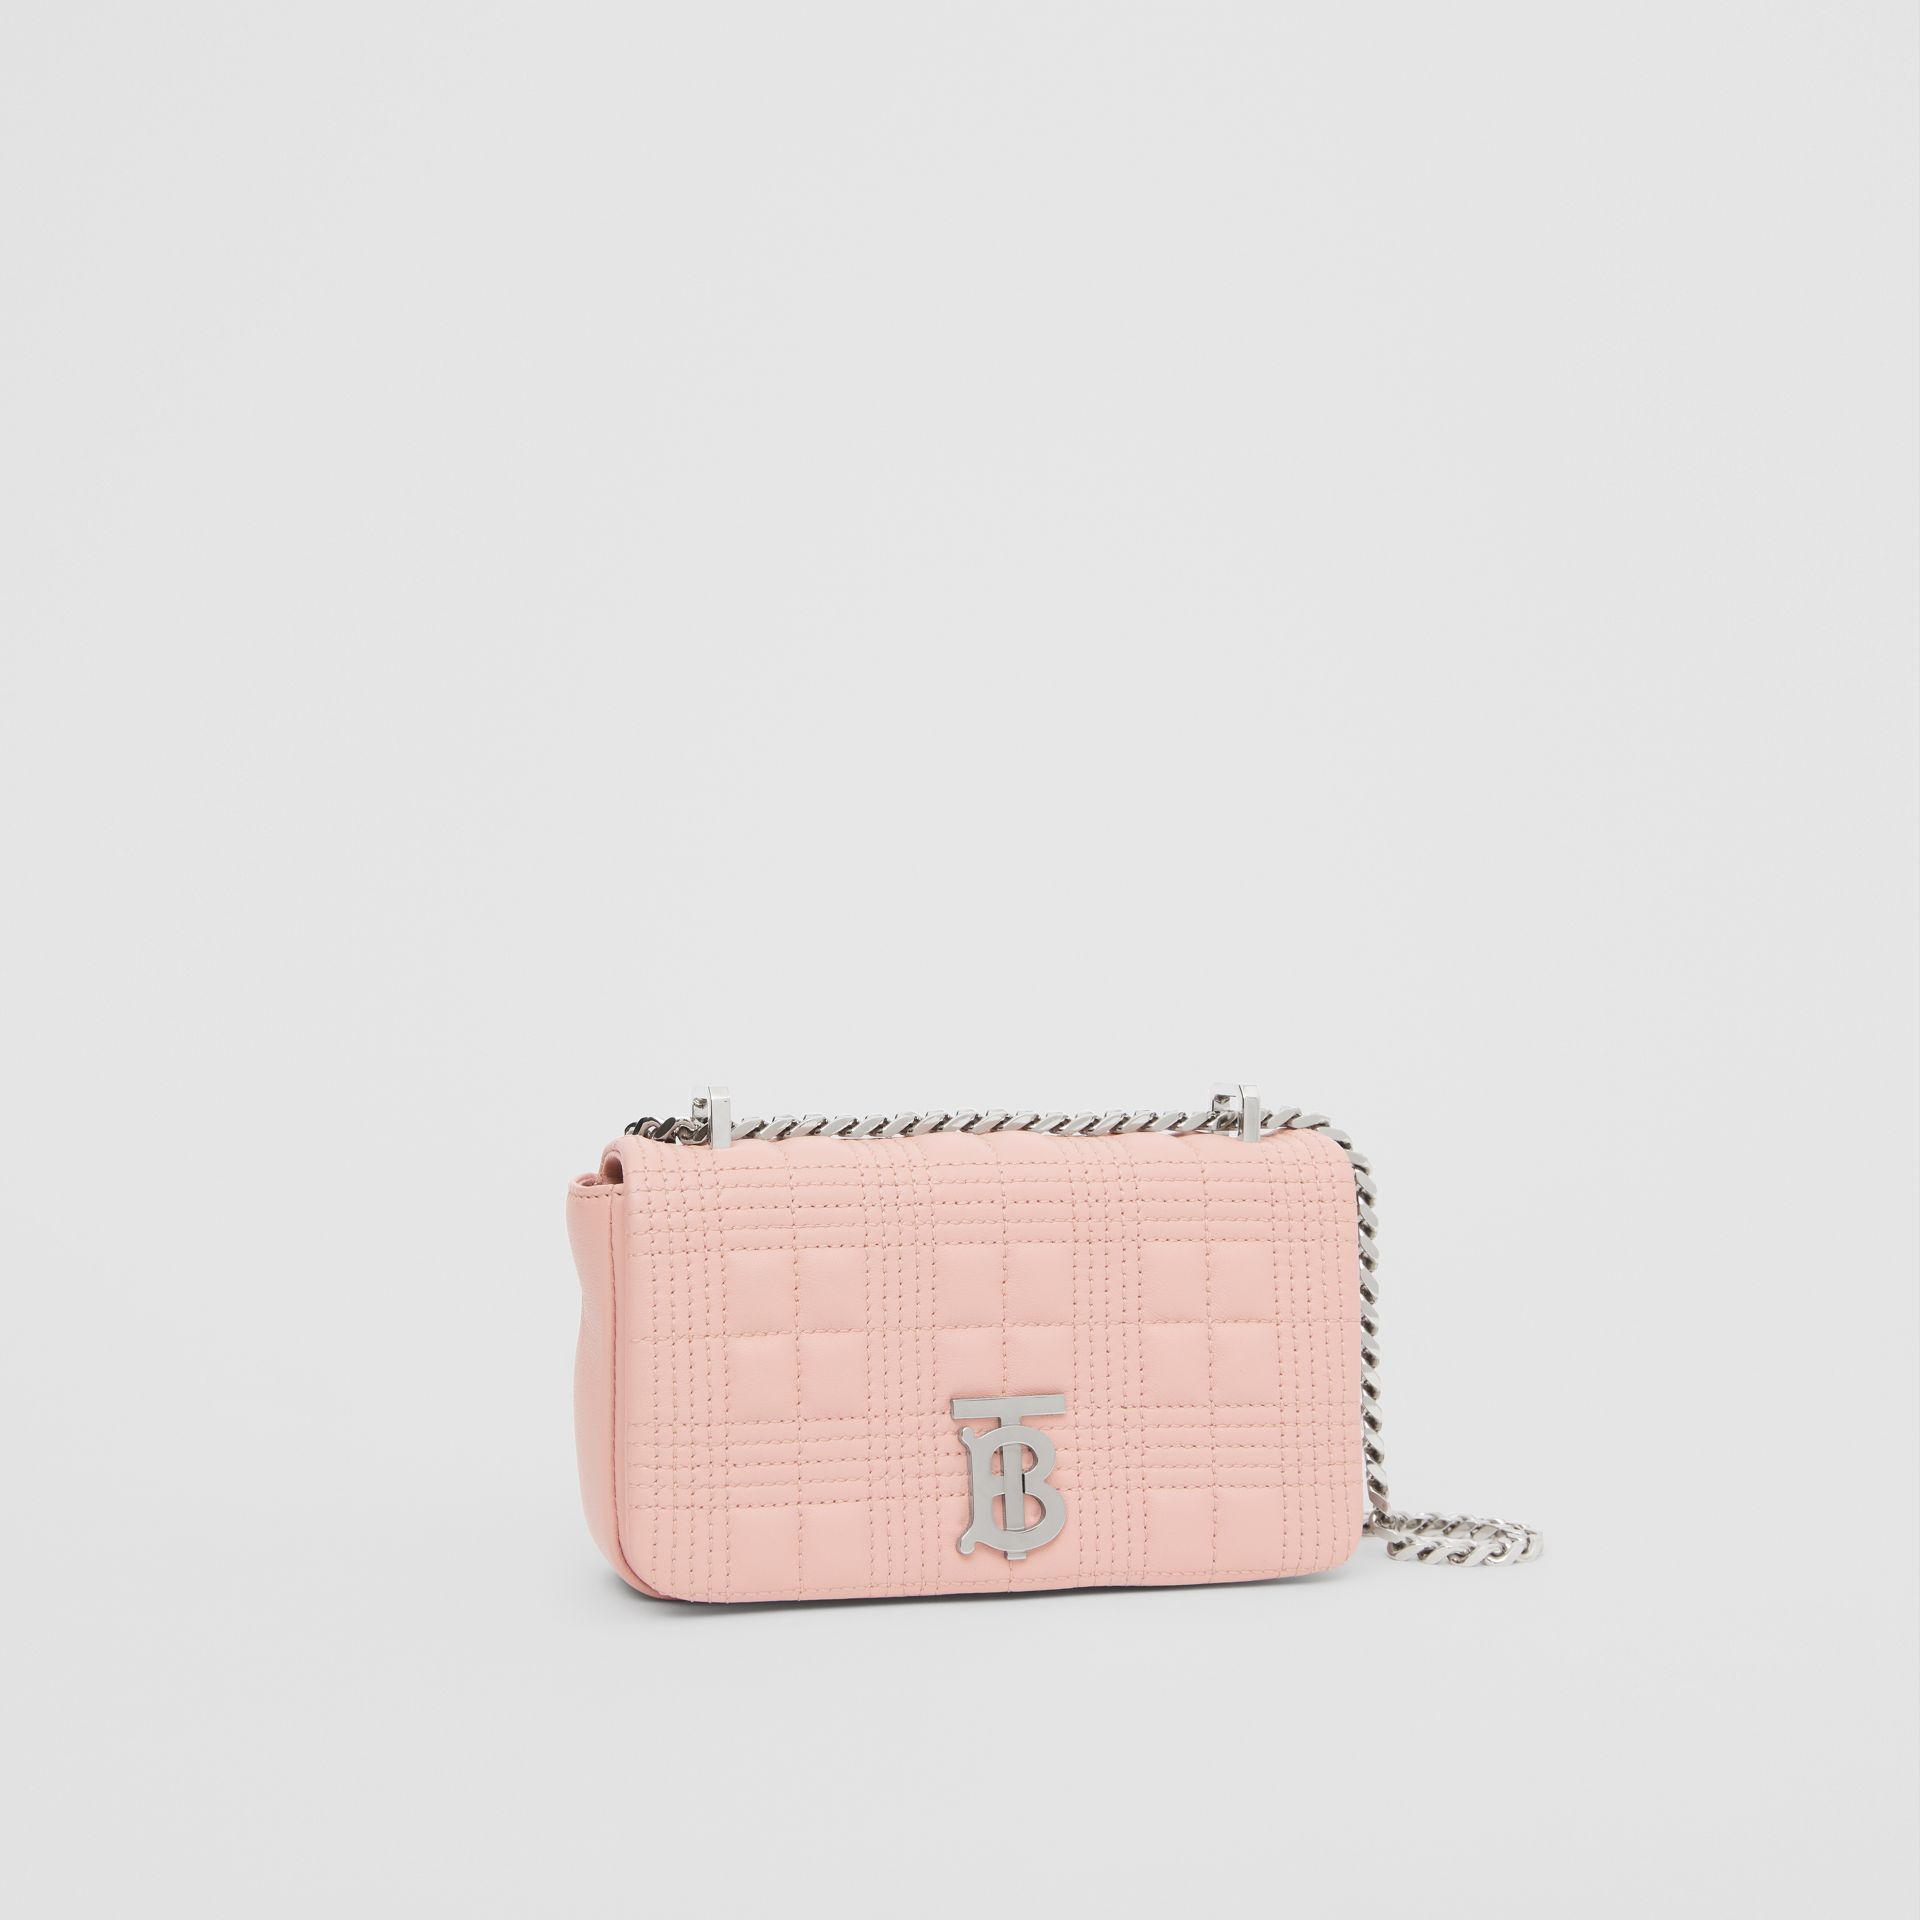 Mini Quilted Lambskin Lola Bag in Blush Pink - Women | Burberry Canada - gallery image 6